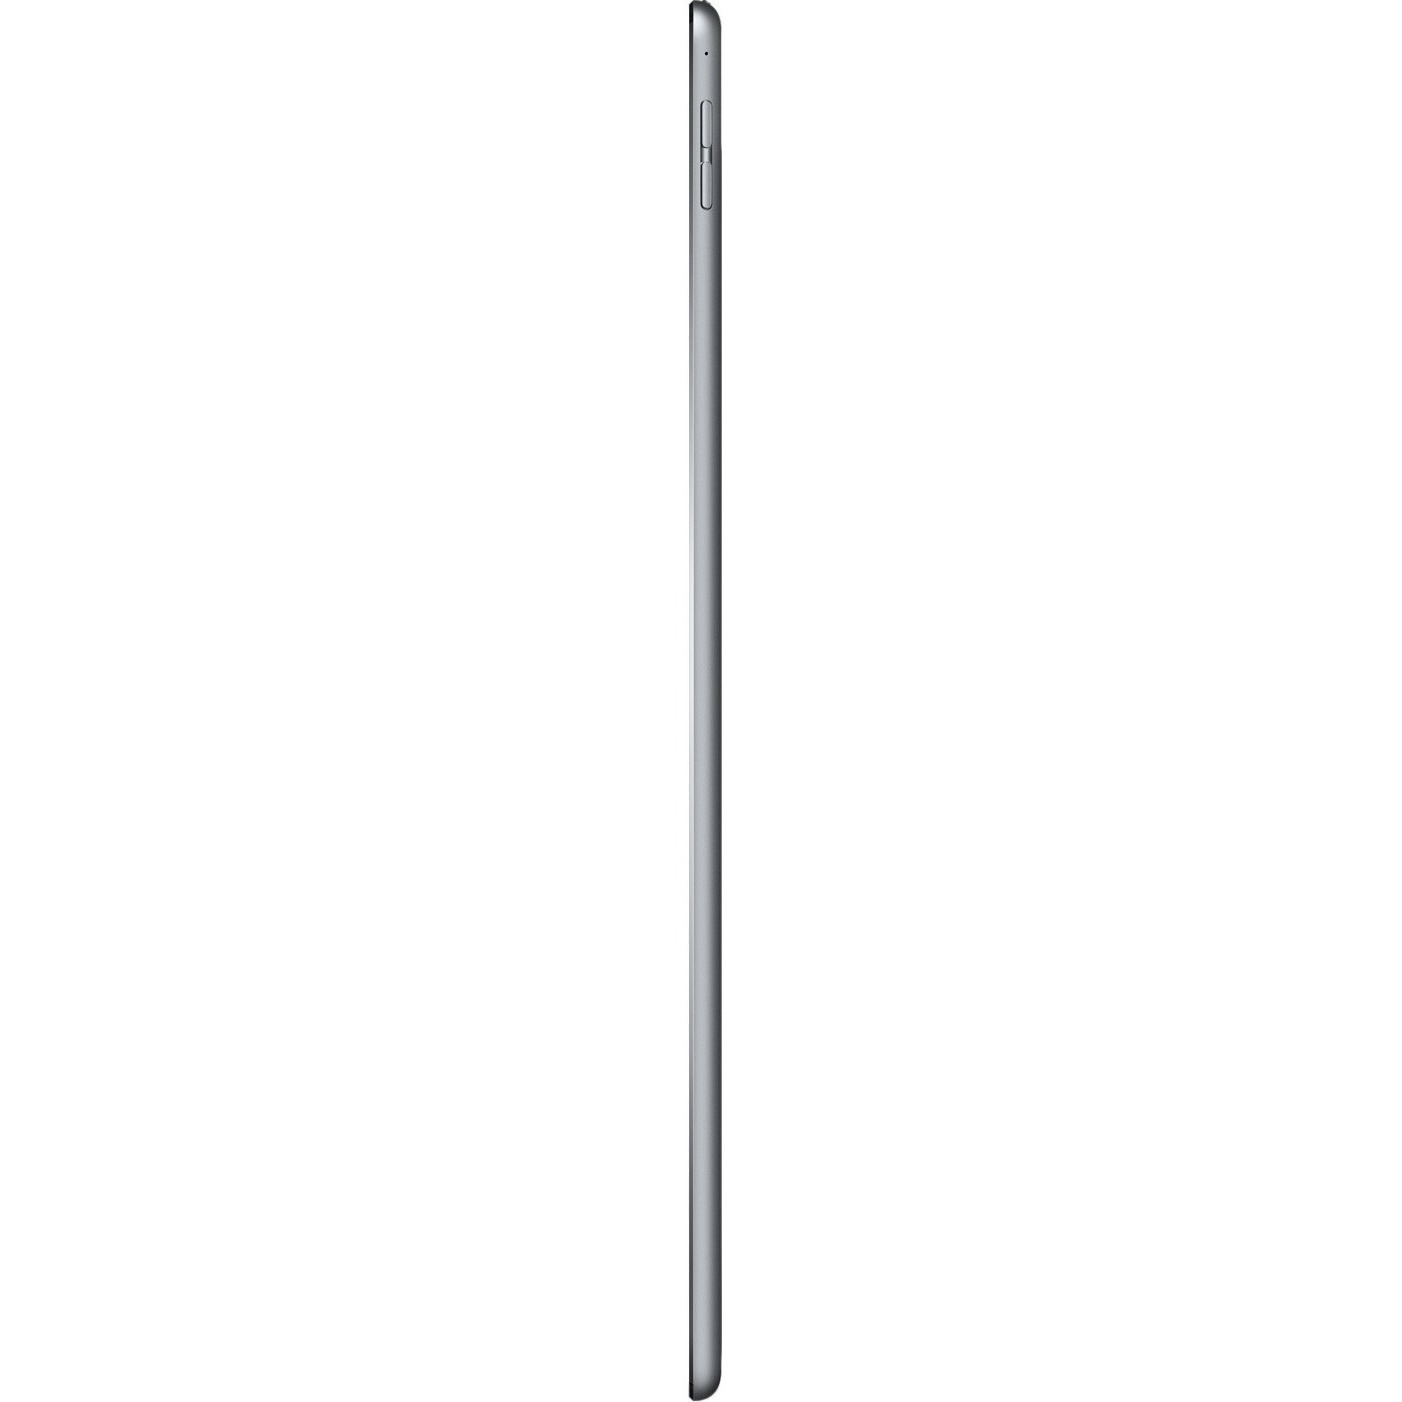 Apple iPad Pro Tablet - 32.8 cm 12.9inch - Apple A10X Hexa-core 6 Core - 64 GB - iOS 10 - 2732 x 2048 - Retina Display - 4G - GSM, CDMA2000 Supported - Space Gray -